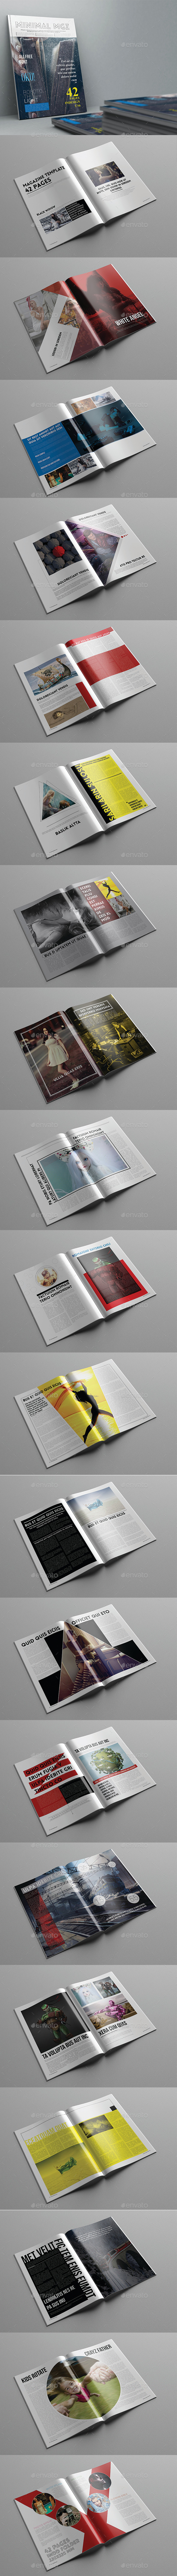 Minimal Magazine Template 42 Pages - Magazines Print Templates